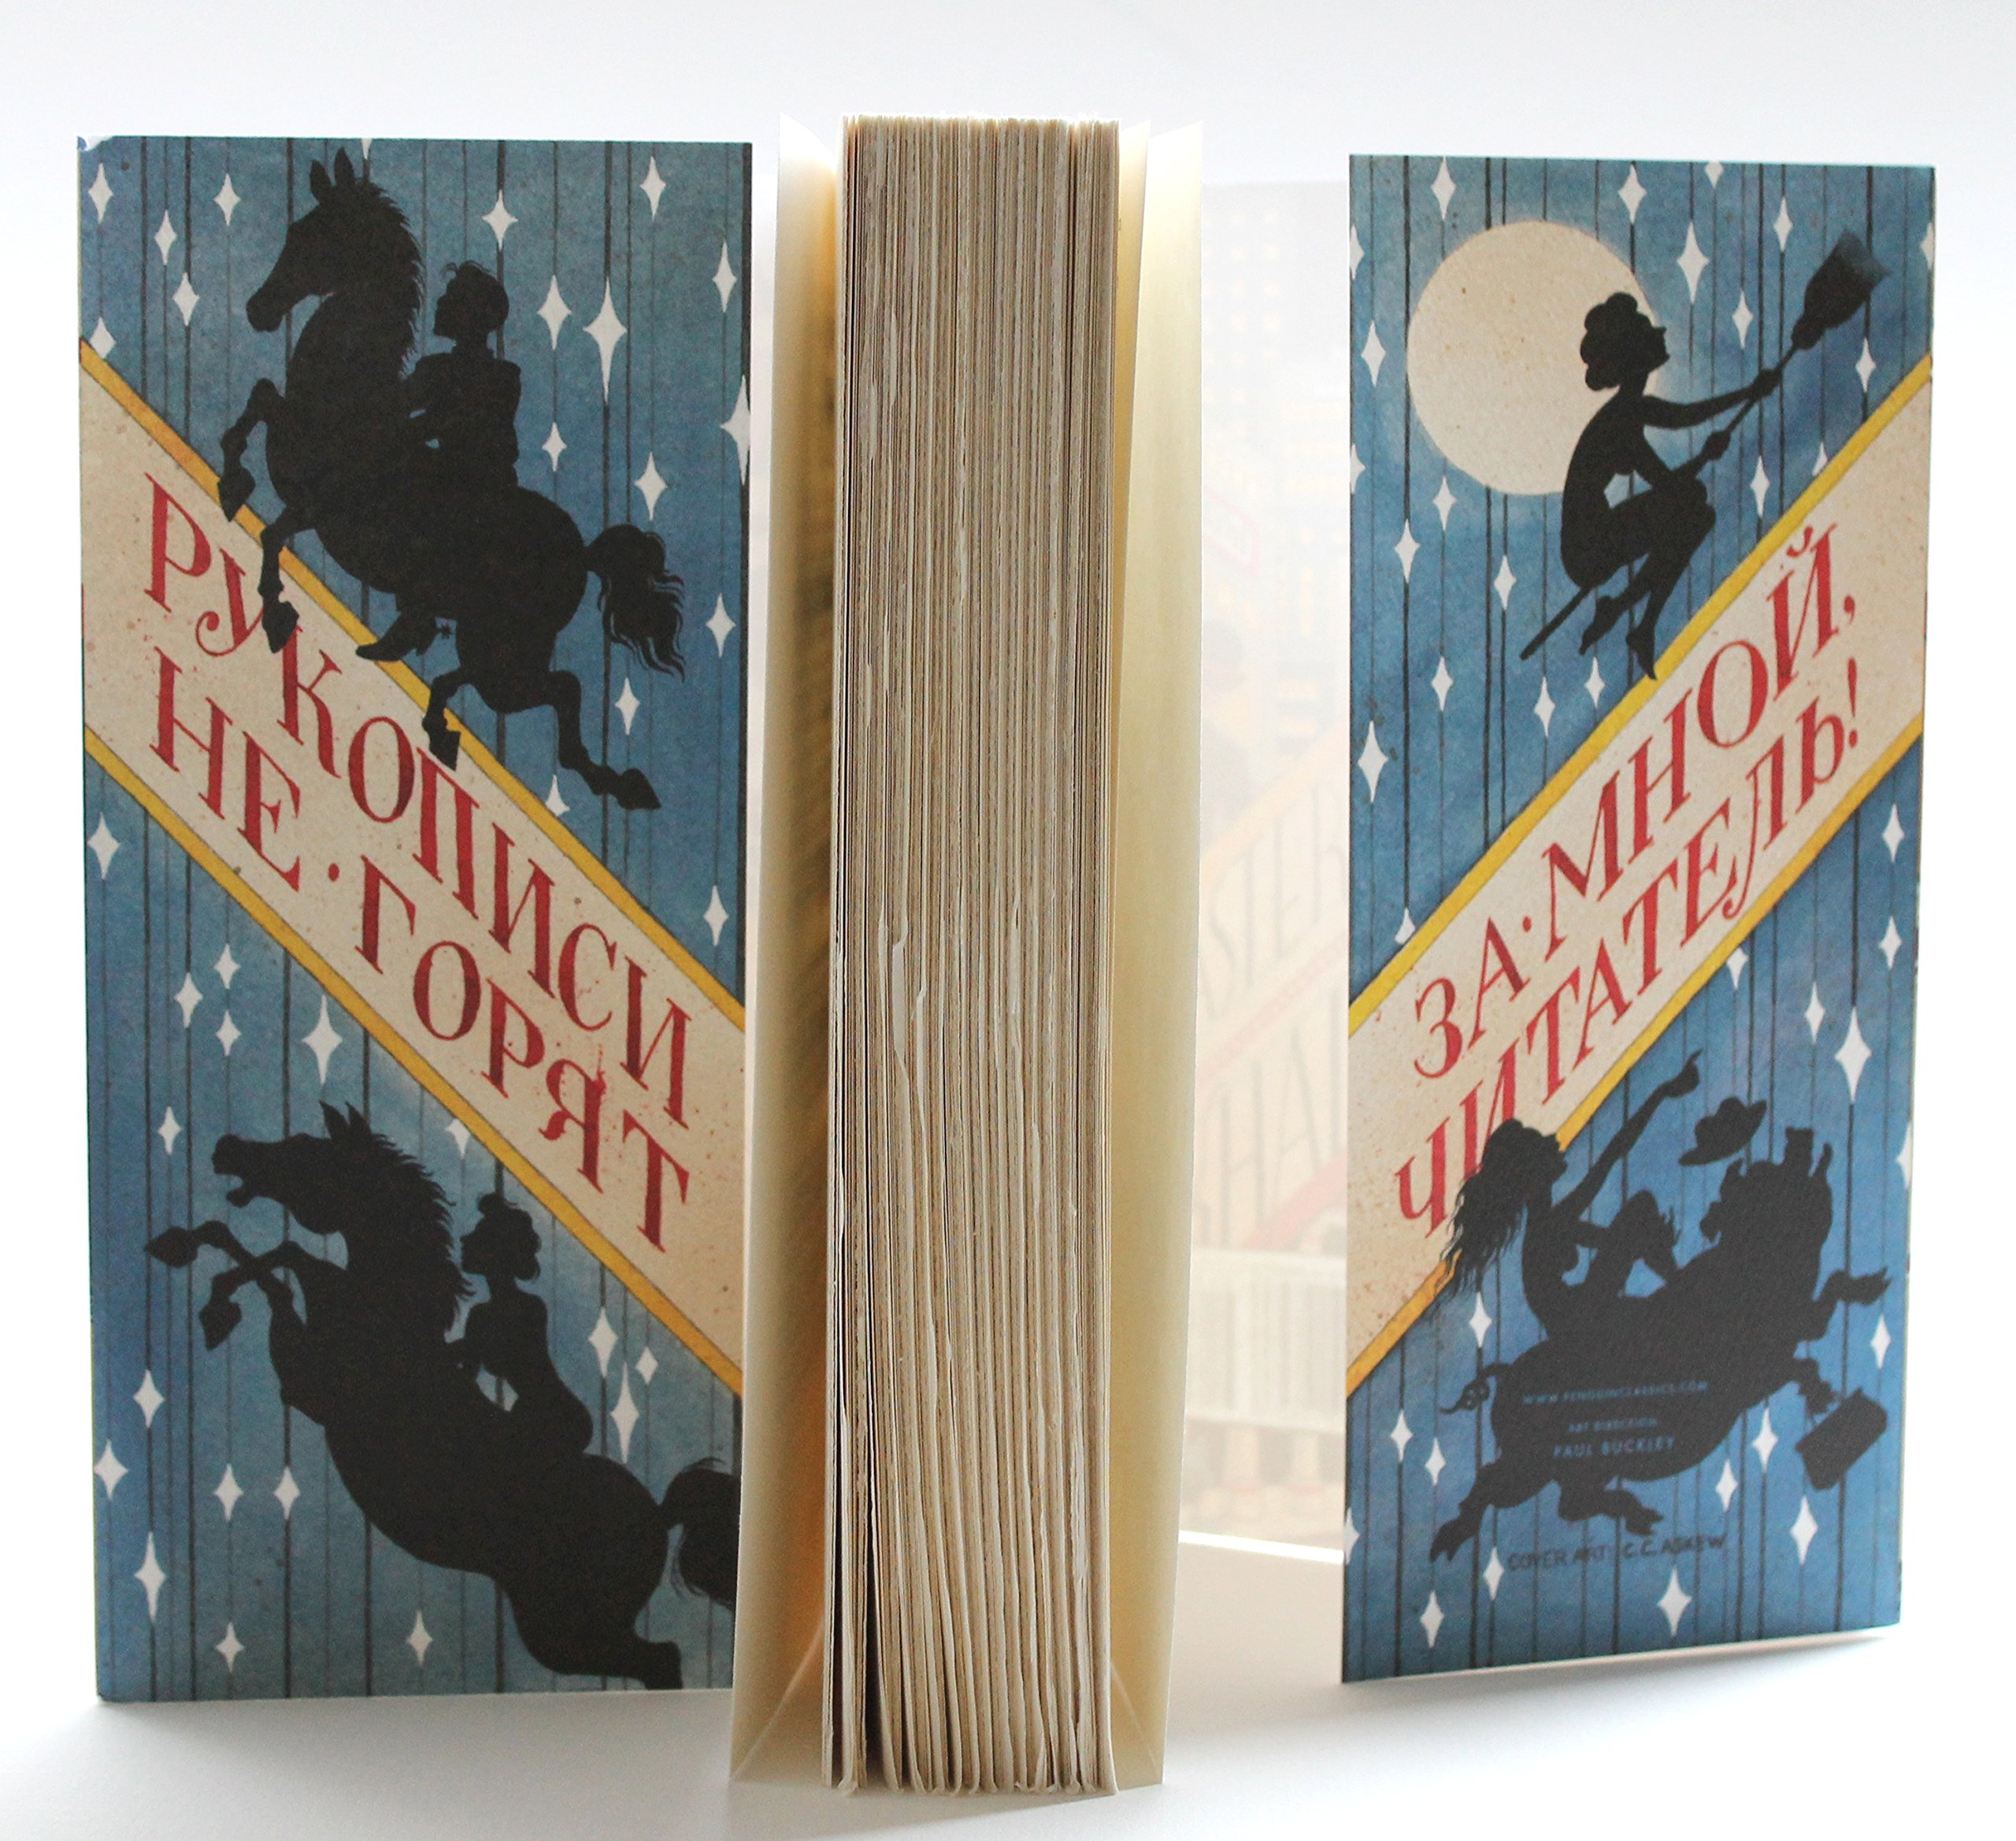 The Master and Margarita. All screen versions of the cult novel by Bulgakov